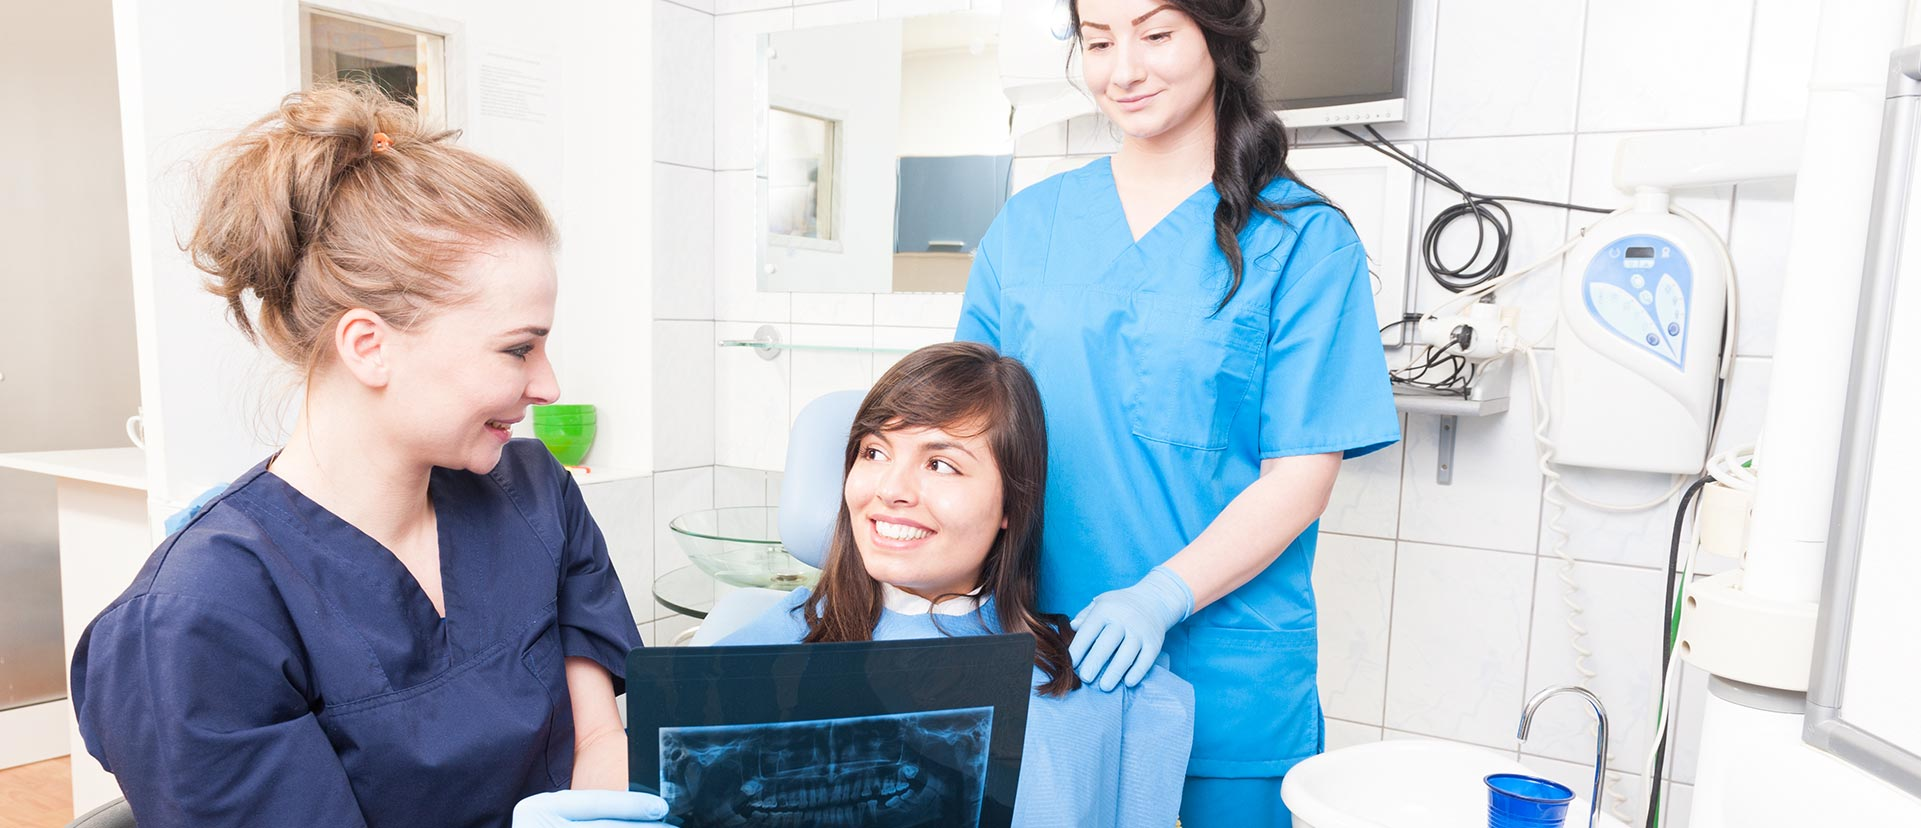 Dentist showing a x-ray report to patient